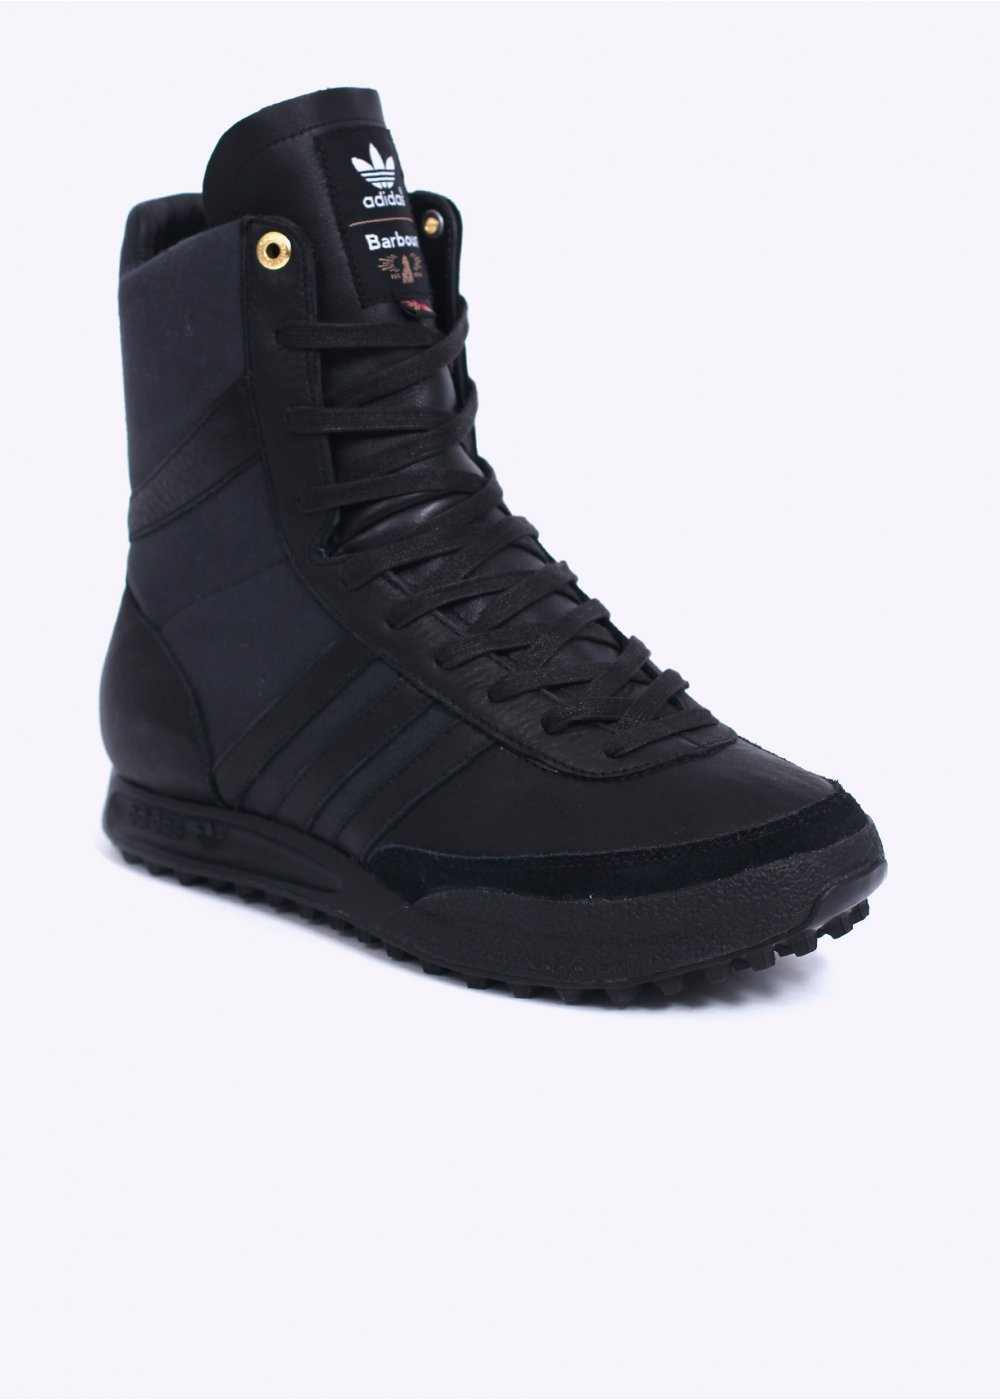 sale retailer 86f75 14bf8 adidas Originals x Barbour GSG9 - Black